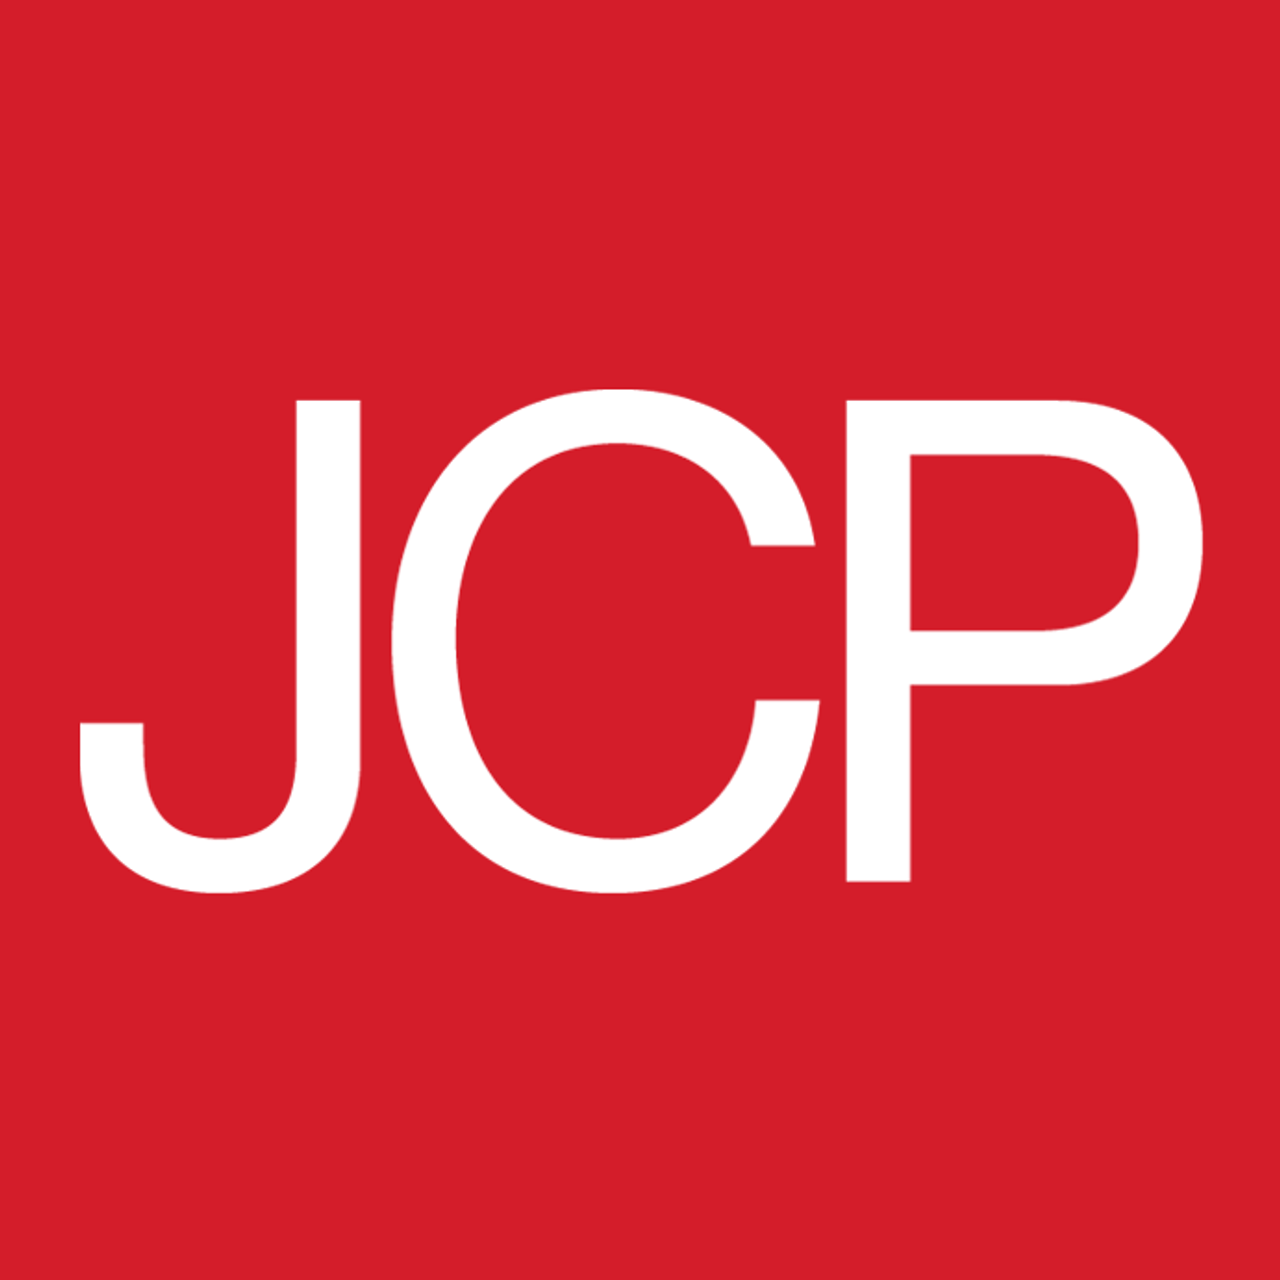 JC PENNY STOCK